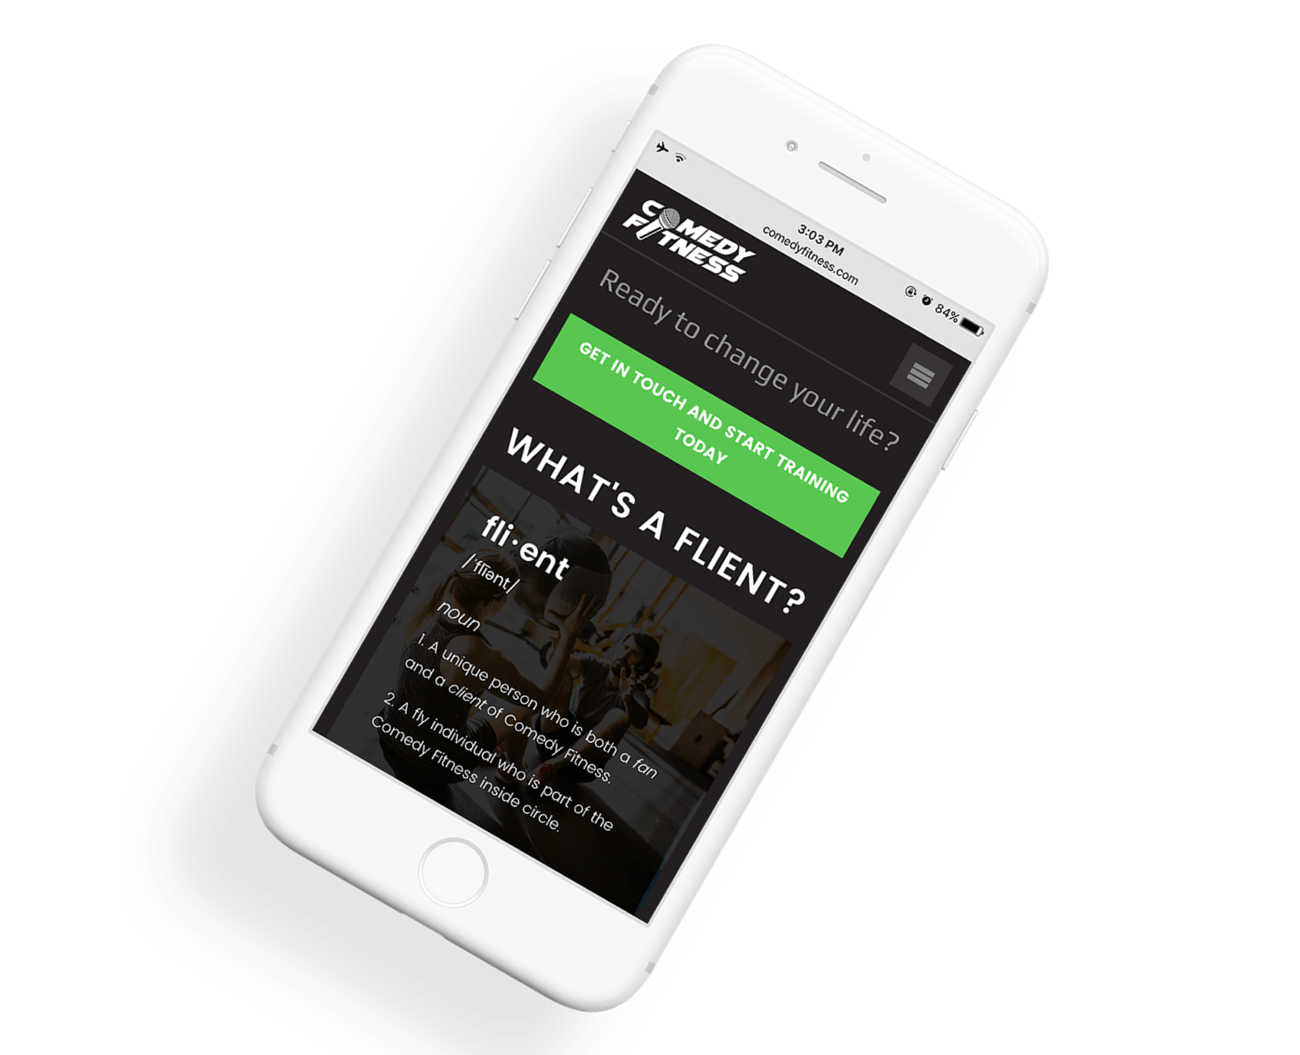 We created a website that's optimized for mobile devices